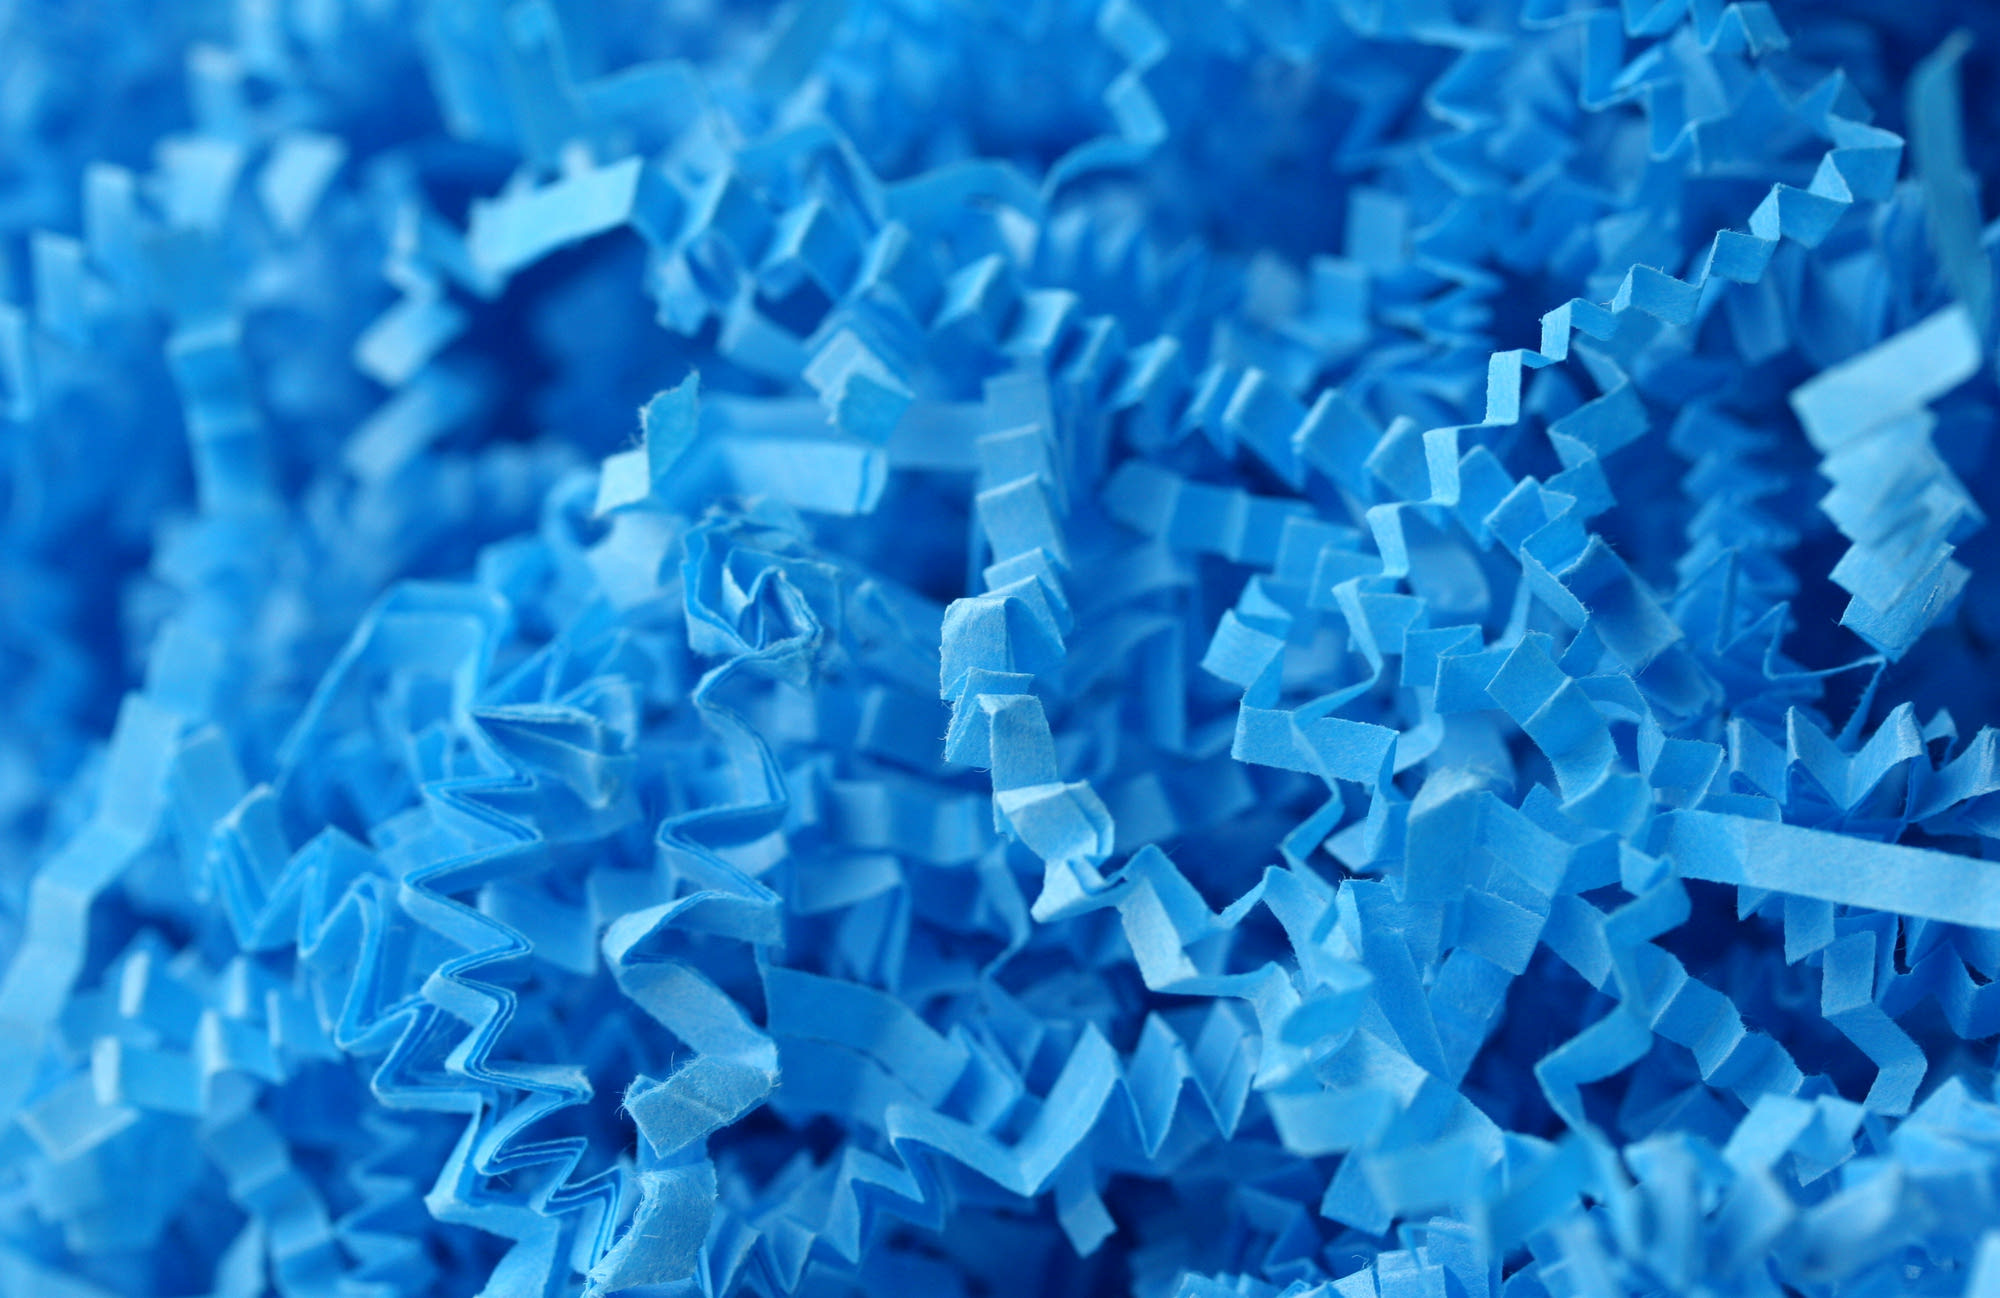 Blue – Shredded blue paper.